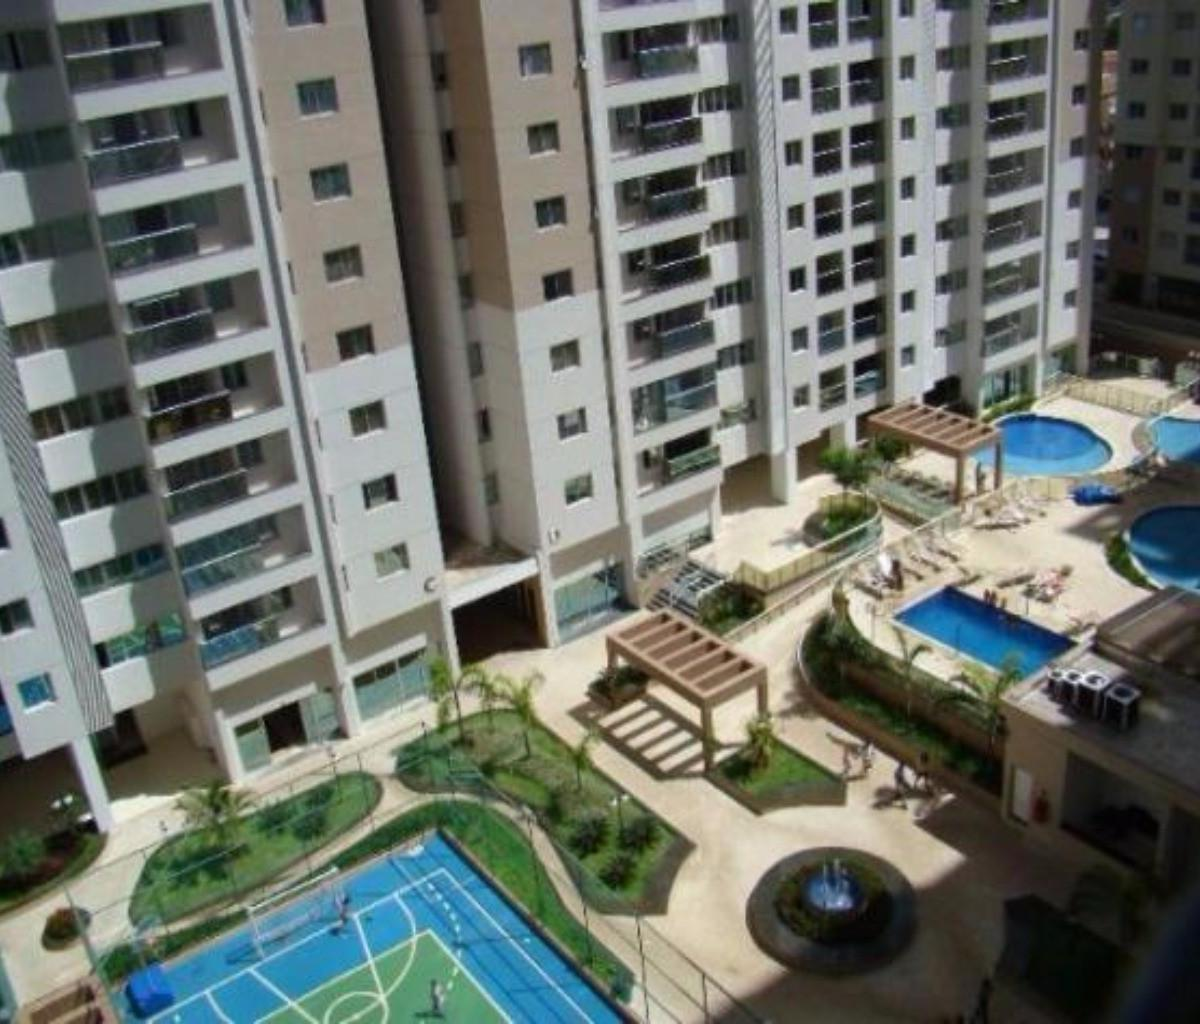 APARTAMENTO - OLYMPIQUE, GUARÁ II. NILCE: (61) 98416-3898 (TIM E WHATSAPP)